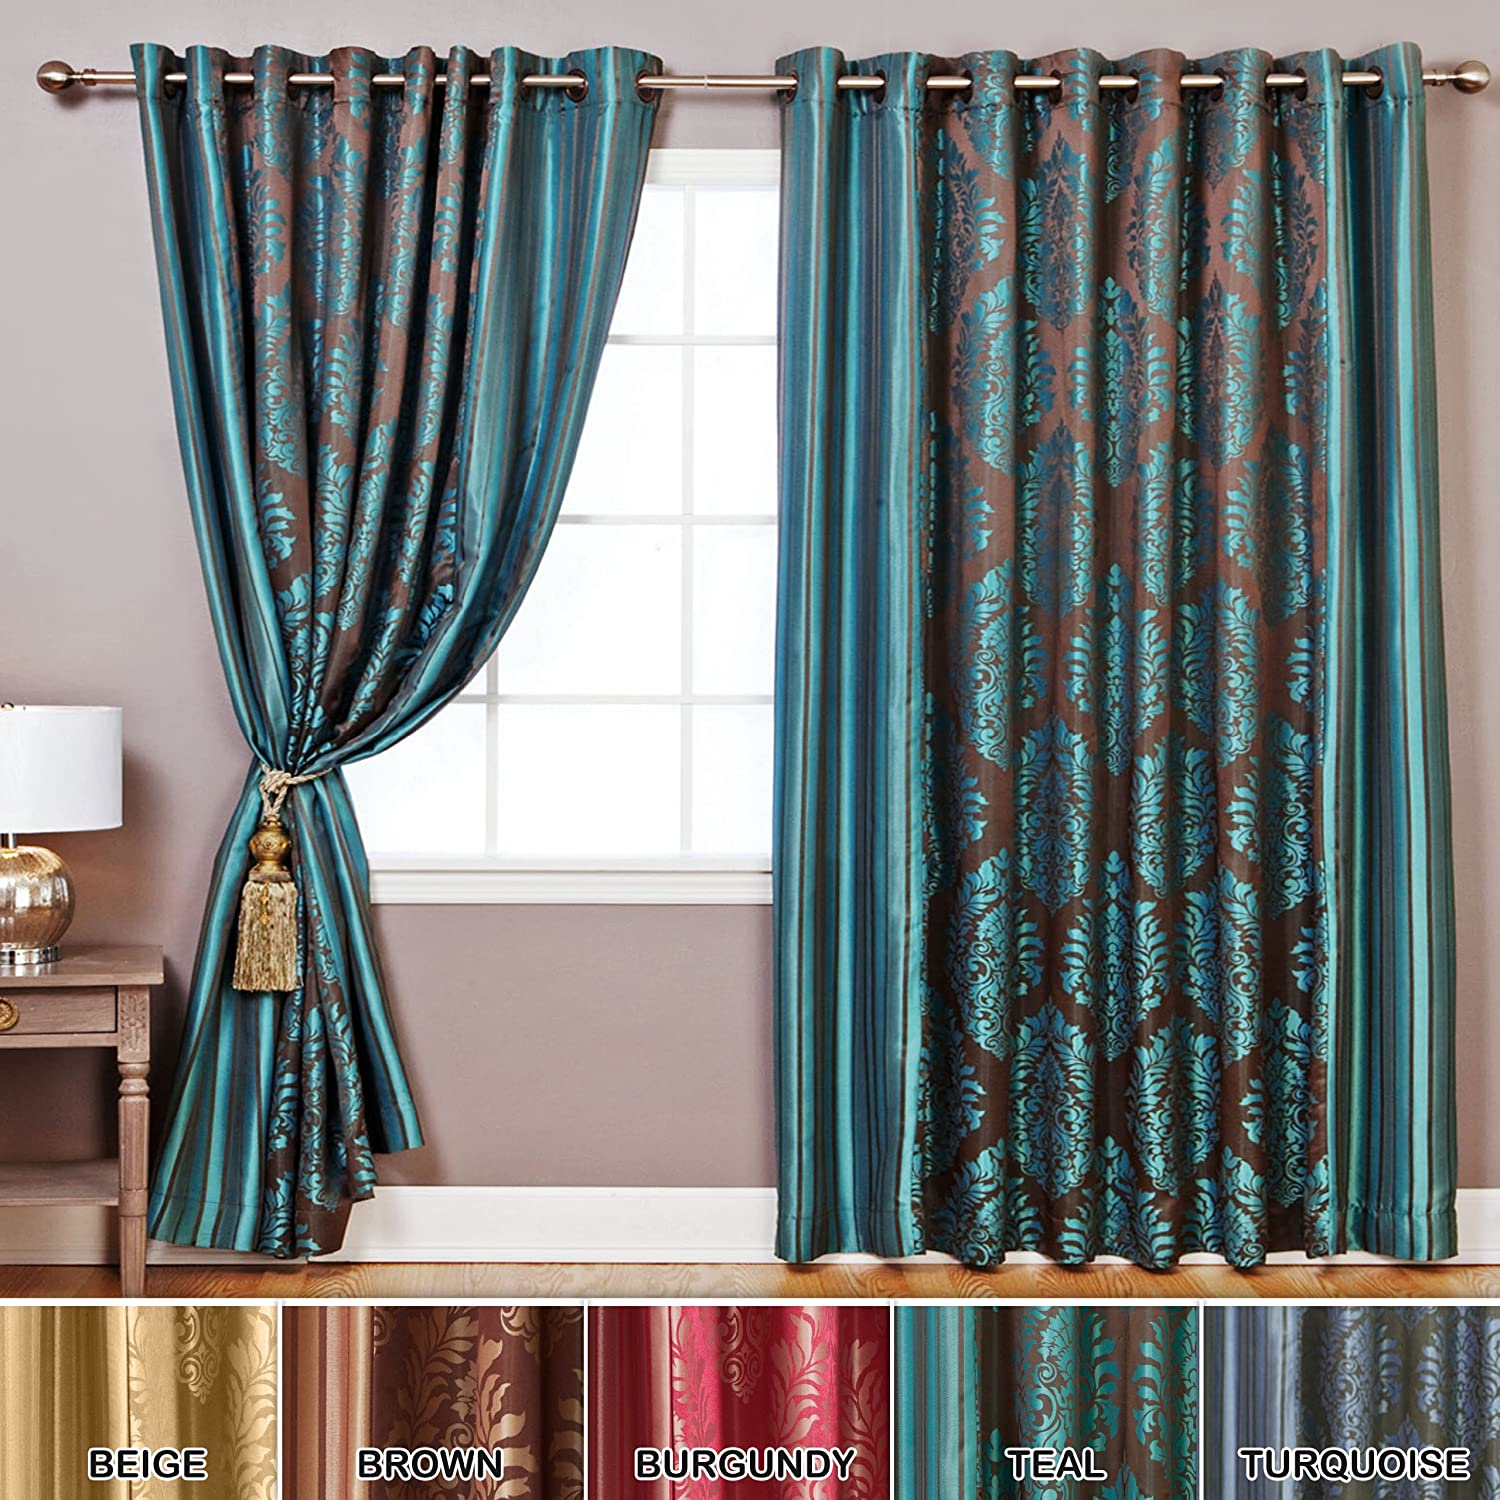 "Best Home Fashion Wide Width Damask Jacquard Curtain - Antique Bronze Grommet Top - Teal - 180"" W x84"" L - Two Panels"